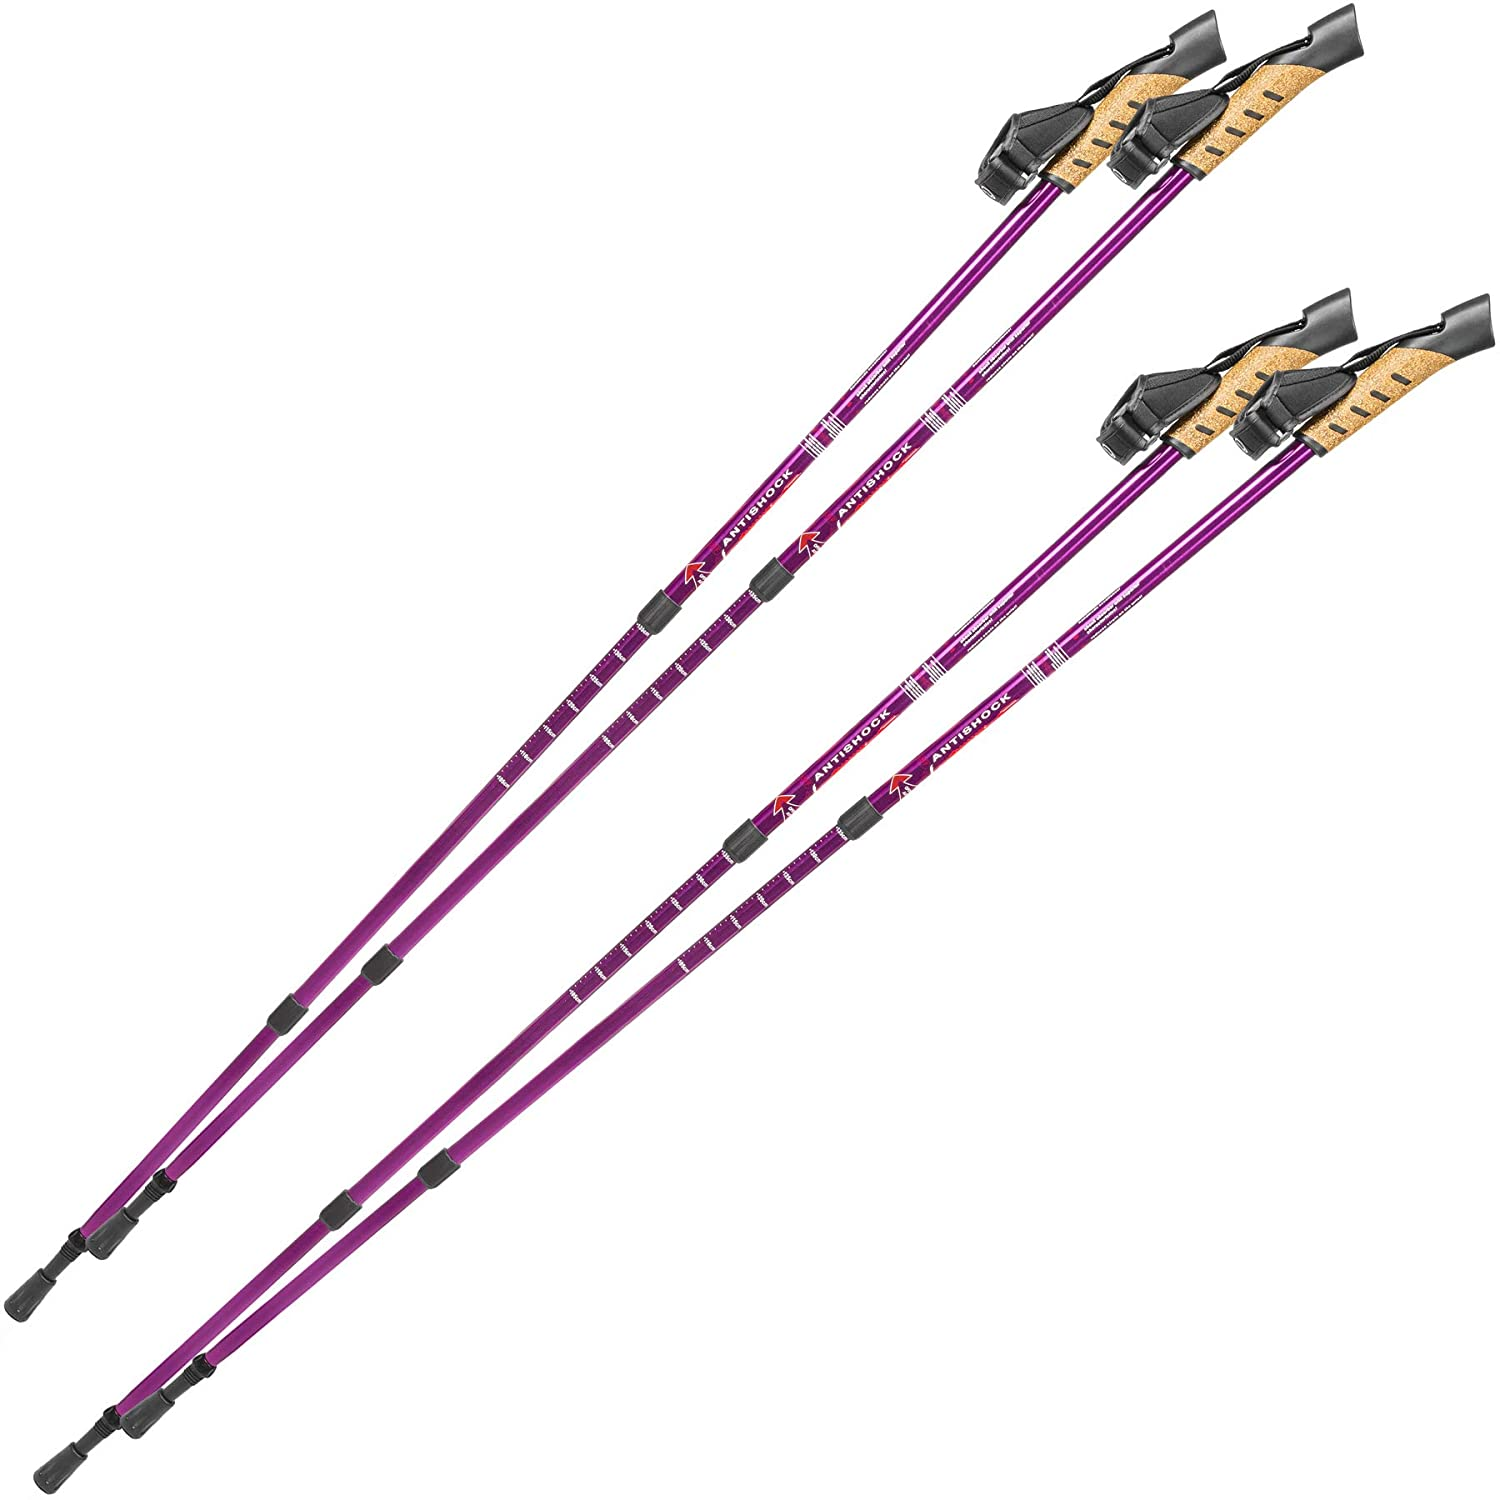 TecTake Pair Nordic Walking sticks with anti-shock telescopic poles trekking different colours and different quantities